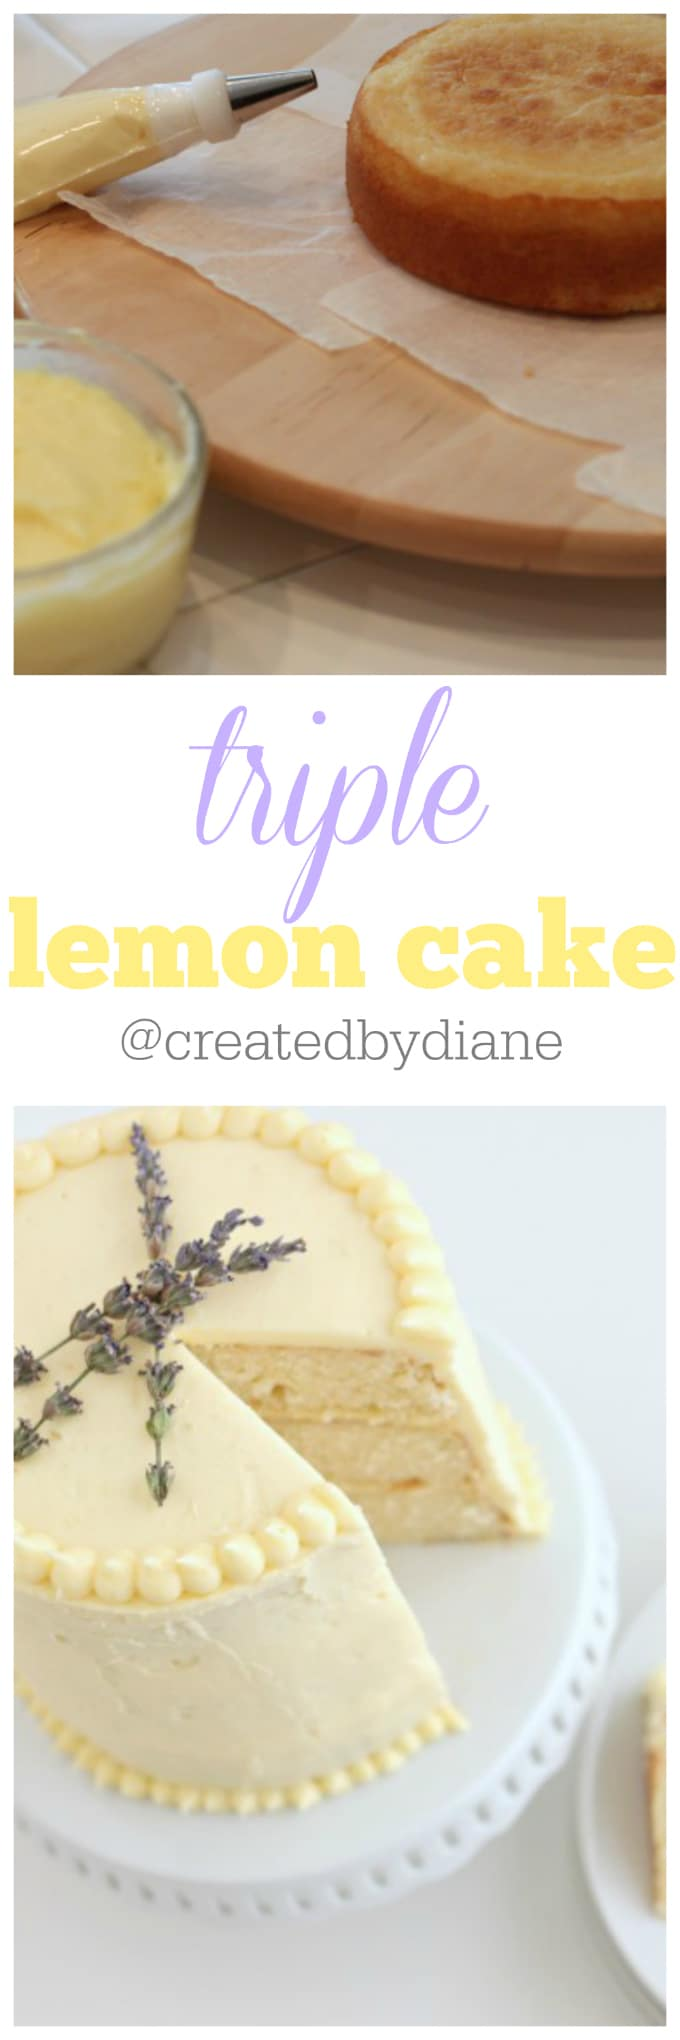 triple lemon cake recipe and instructions from @createdbydiane